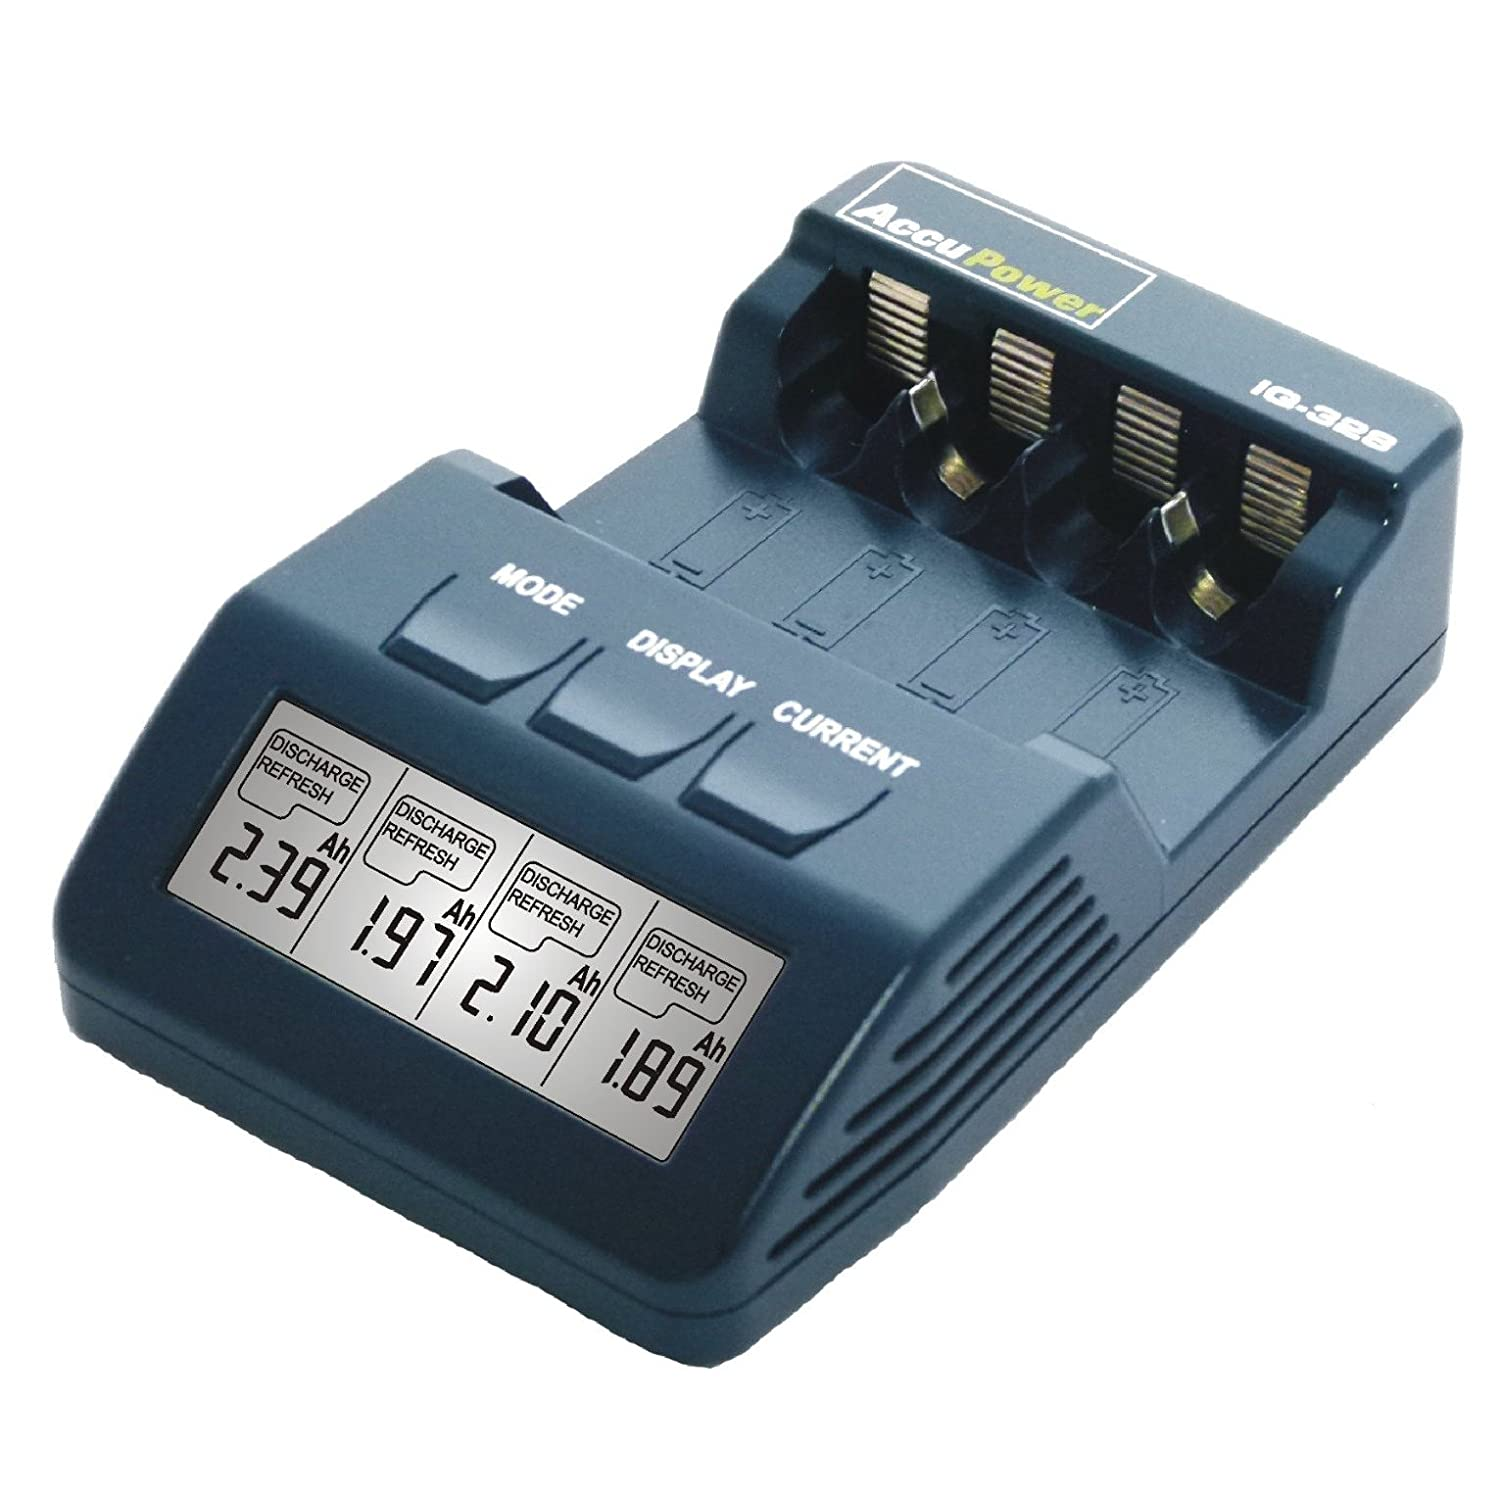 Accupower Iq 328 Battery Charger Analyzer Tester Aa Aaa 200ma Hour 8211 12v Nicad Nimh Nicd Electronics